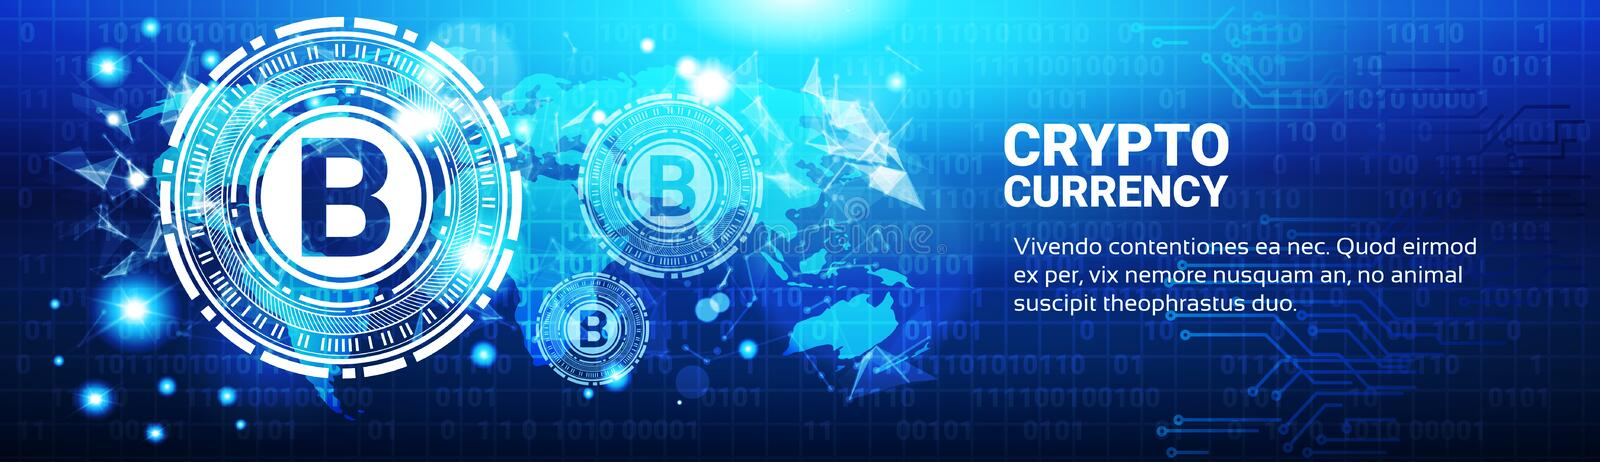 Crypto Currency Concept Bitcoin Sign On Blue World Map. Modern Web Money Technology Horizontal Banner Vector Illustration royalty free illustration